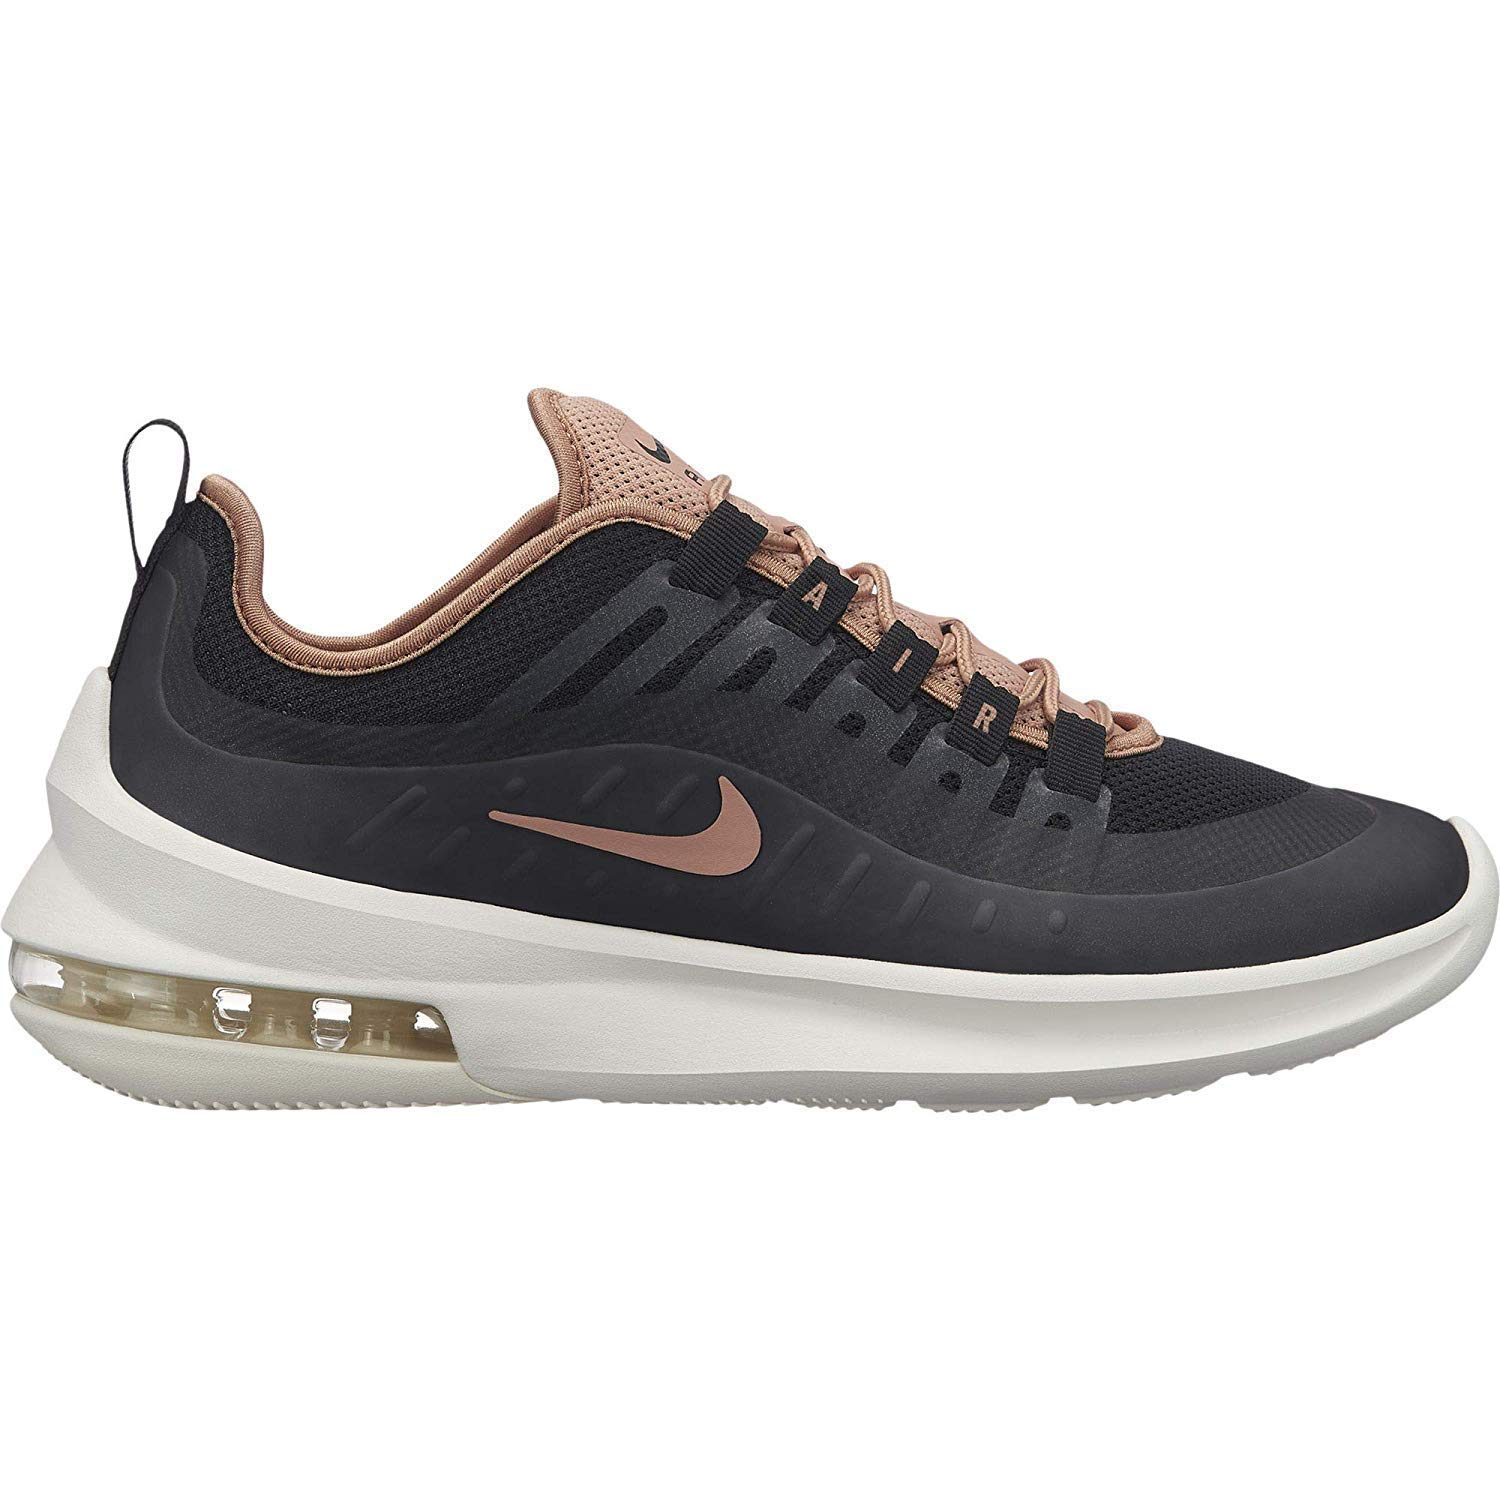 Nike Women's Air Max Axis, Black/Rose Gold, 6 M US